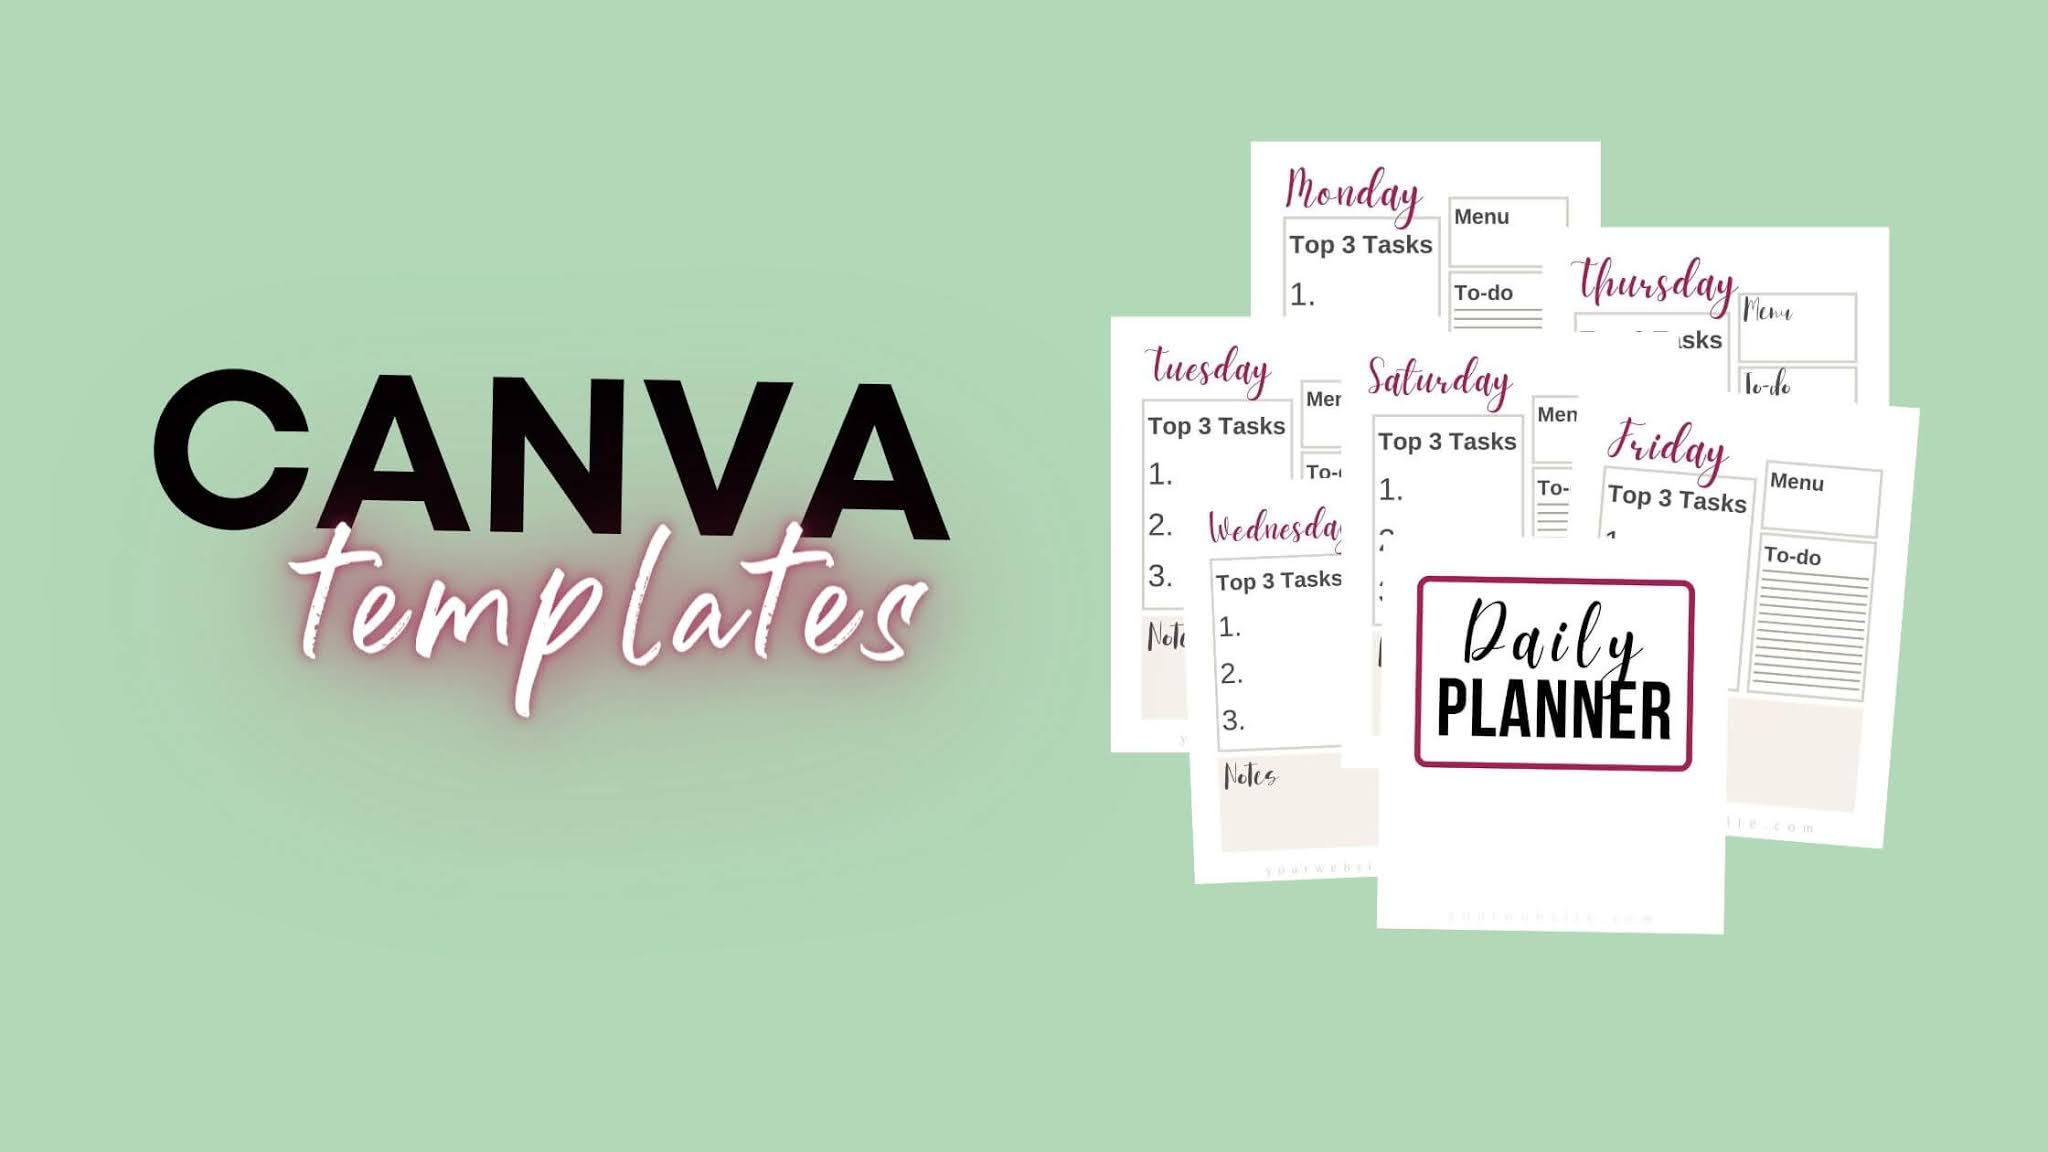 Daily Planner For Moms Canva Templates